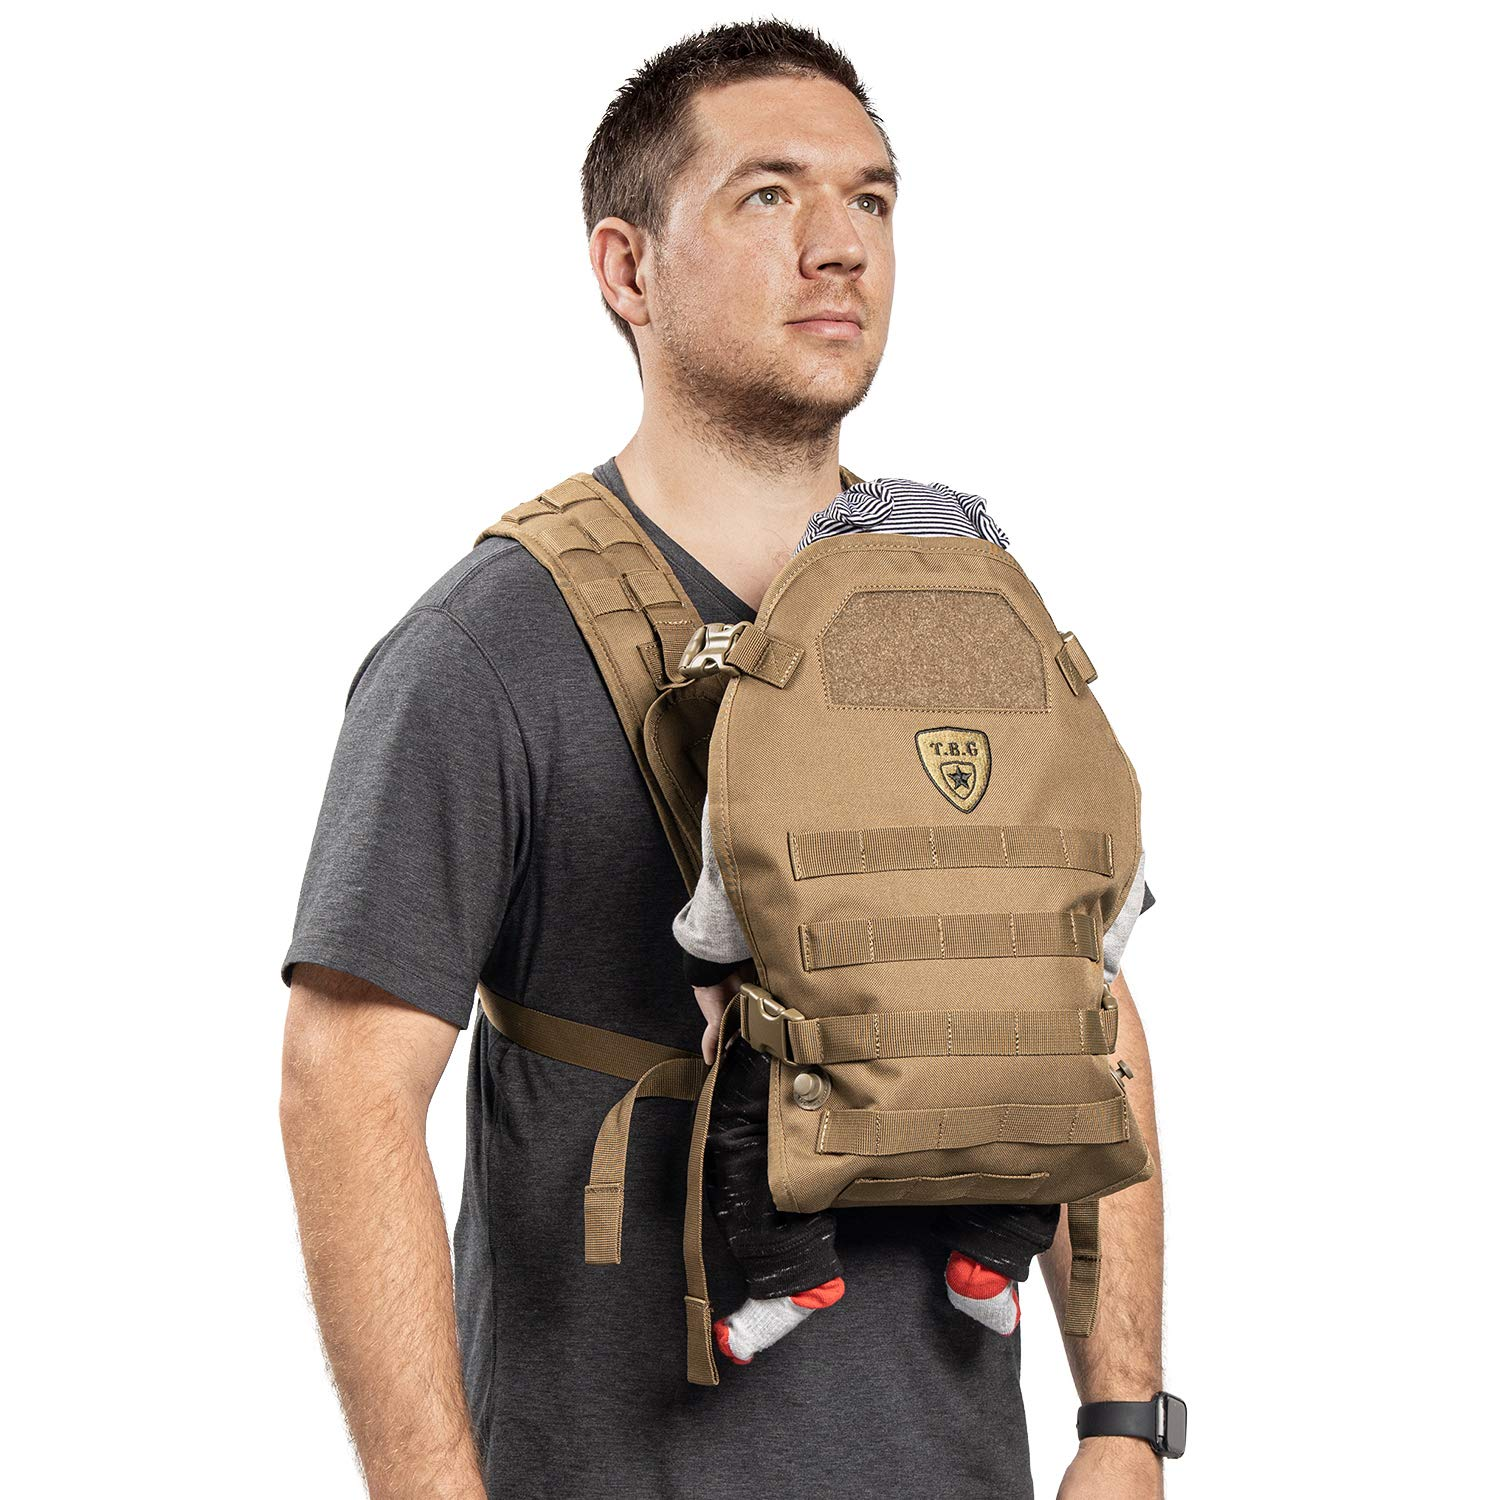 TBG - Mens Tactical Baby Carrier for Infants and Toddlers 8-33 lbs - Compact (Coyote Brown)